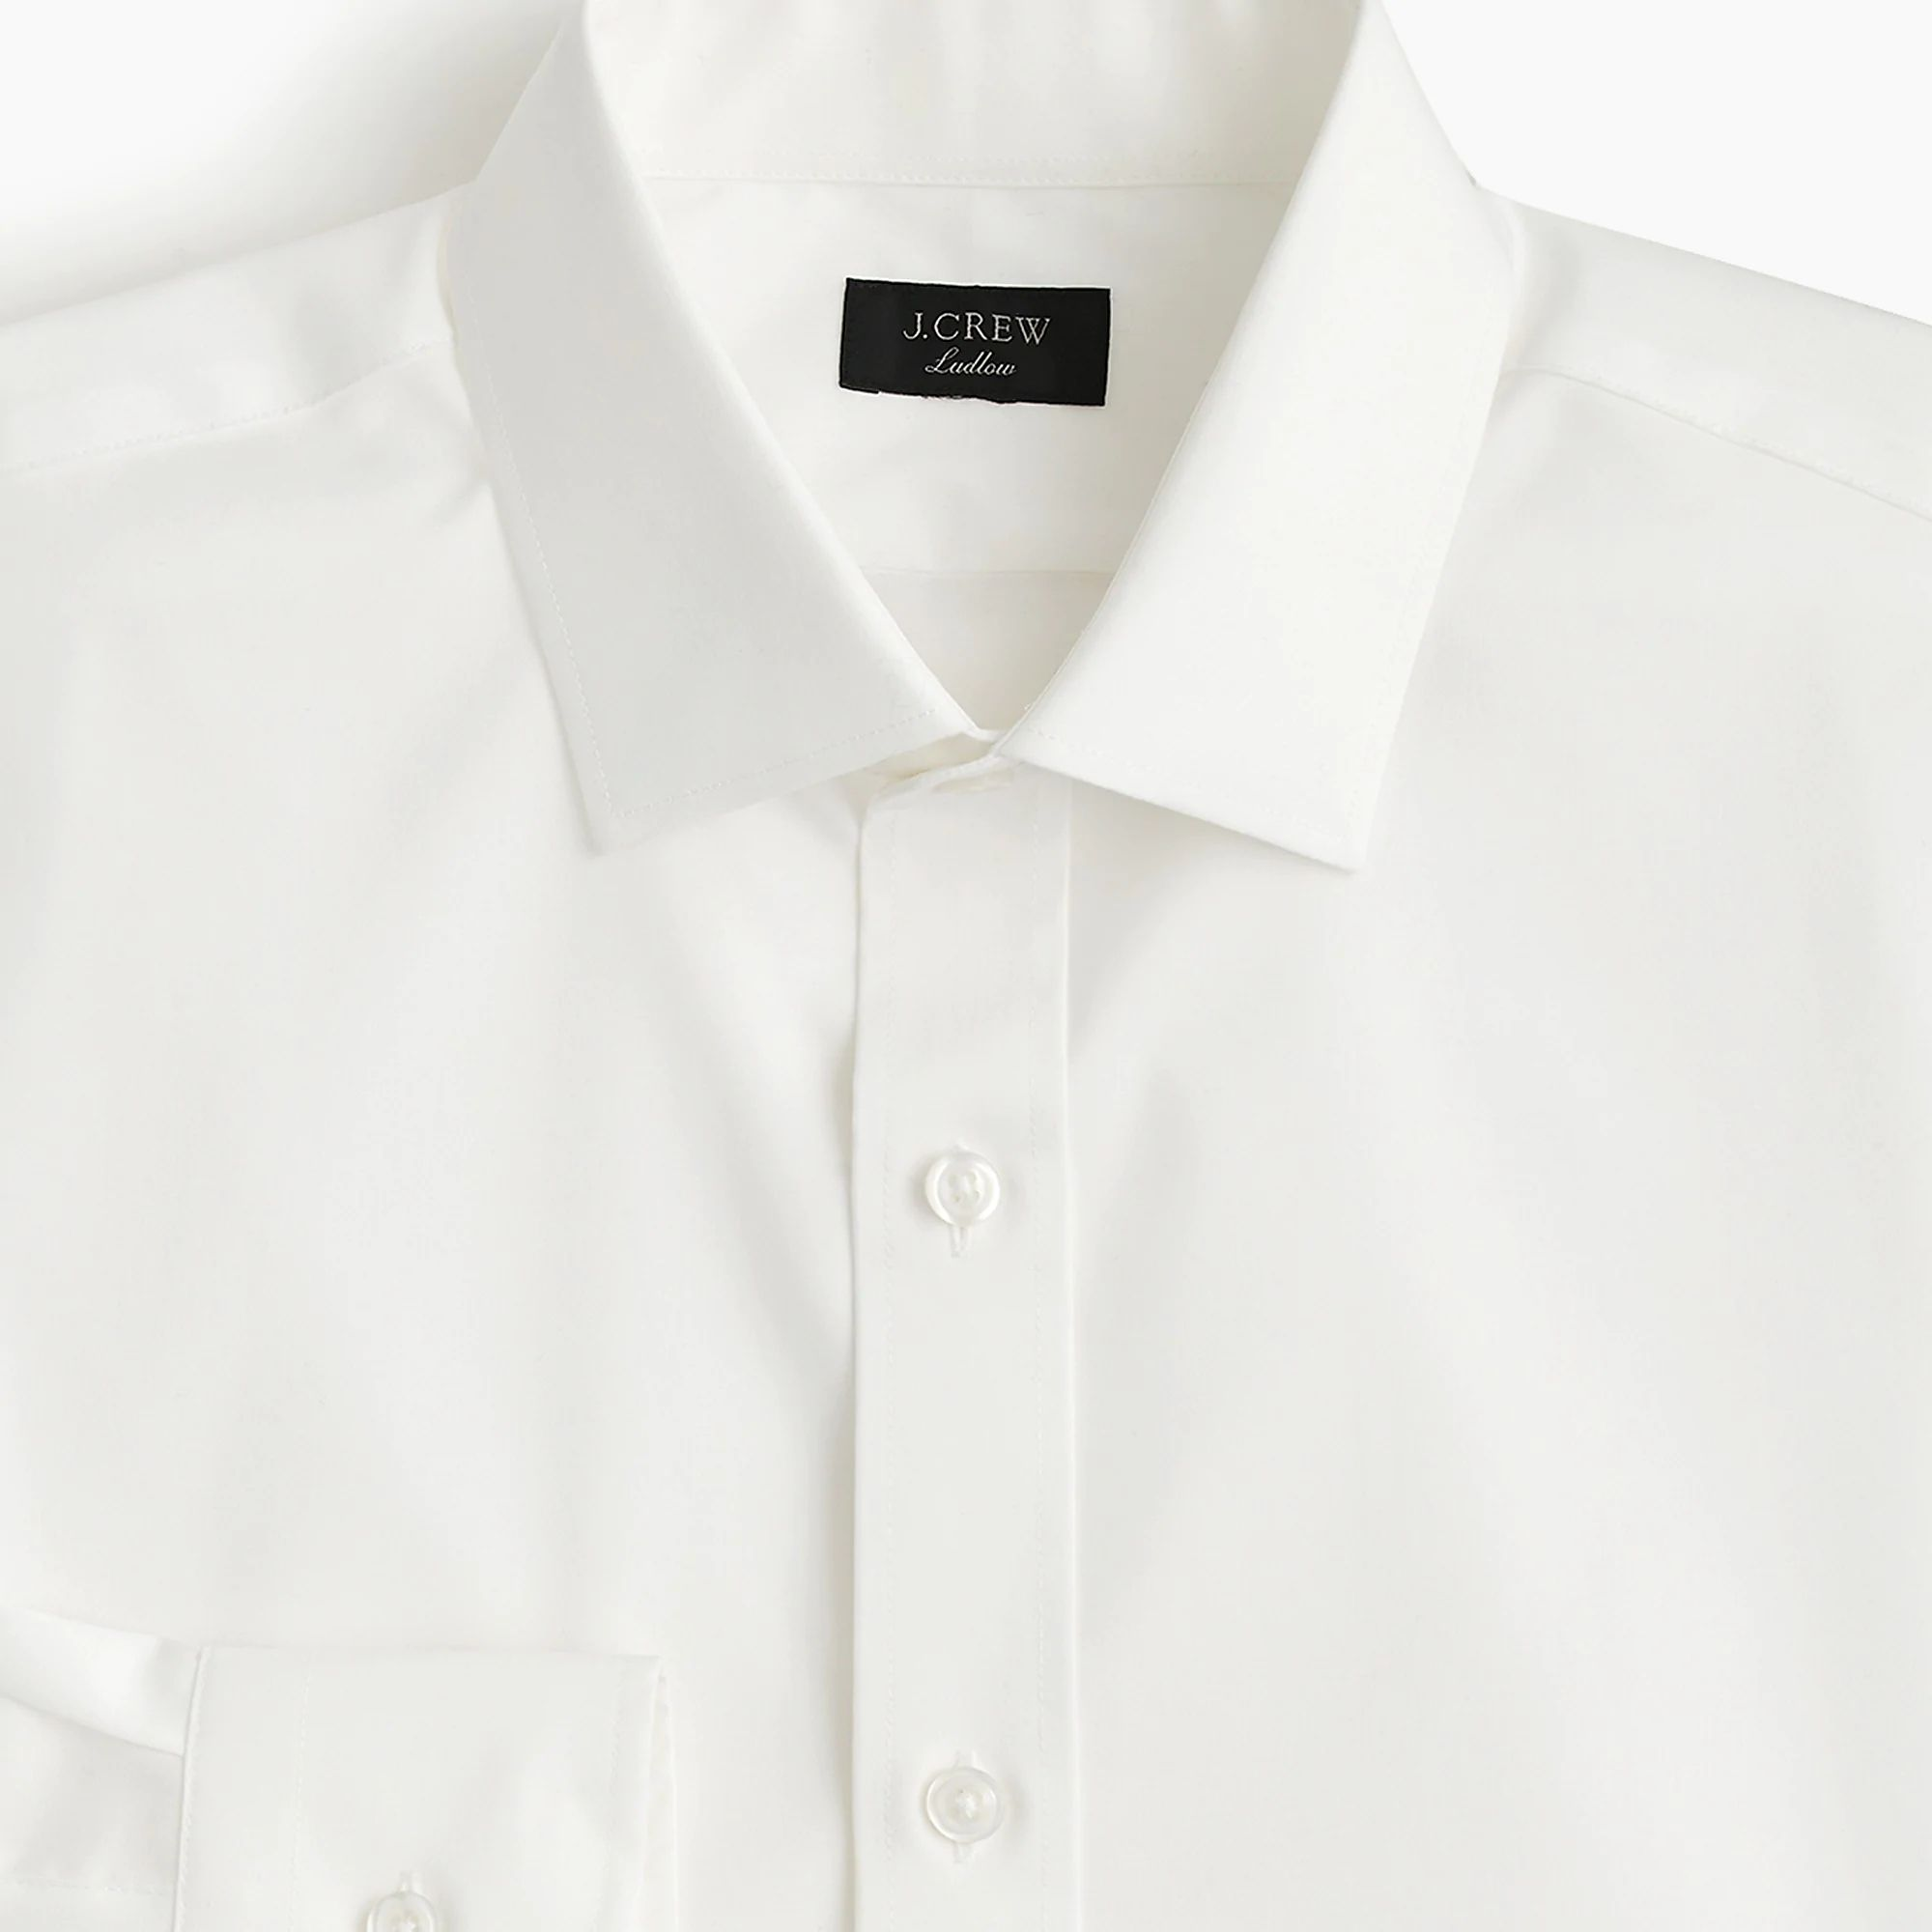 J. Crew Ludlow Stretch Two-Ply Easy-Care Cotton Dress Shirt